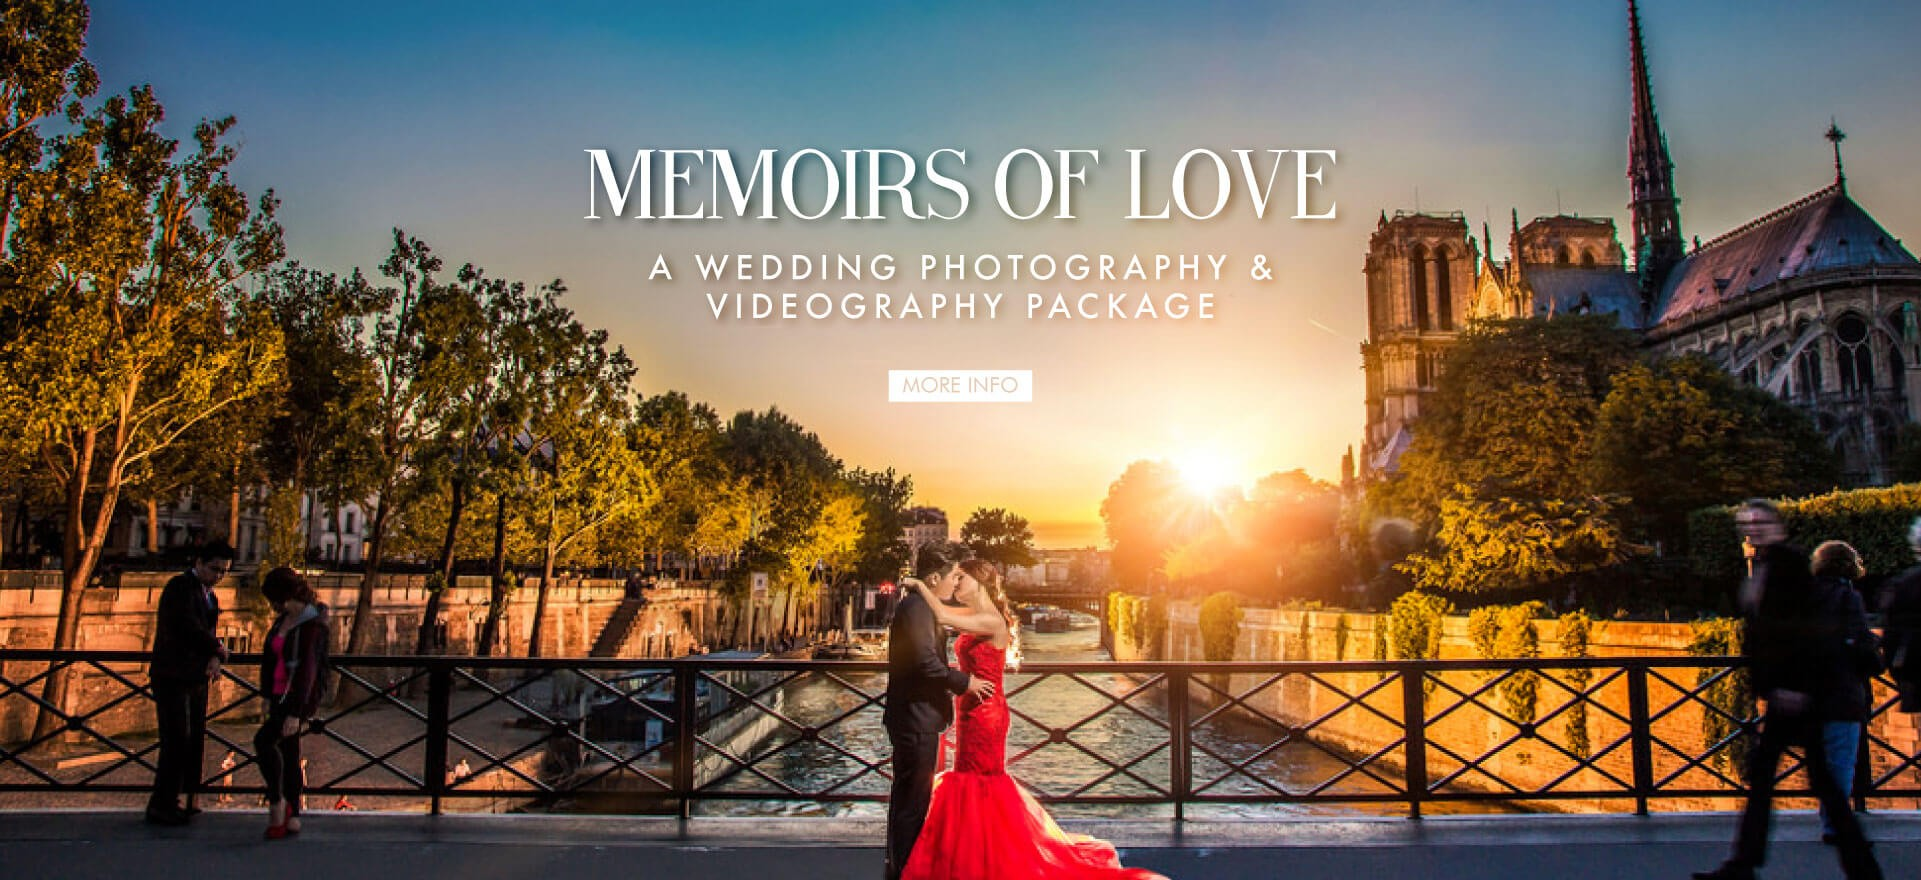 Memoirs Of Love - A Photography & Videography Package